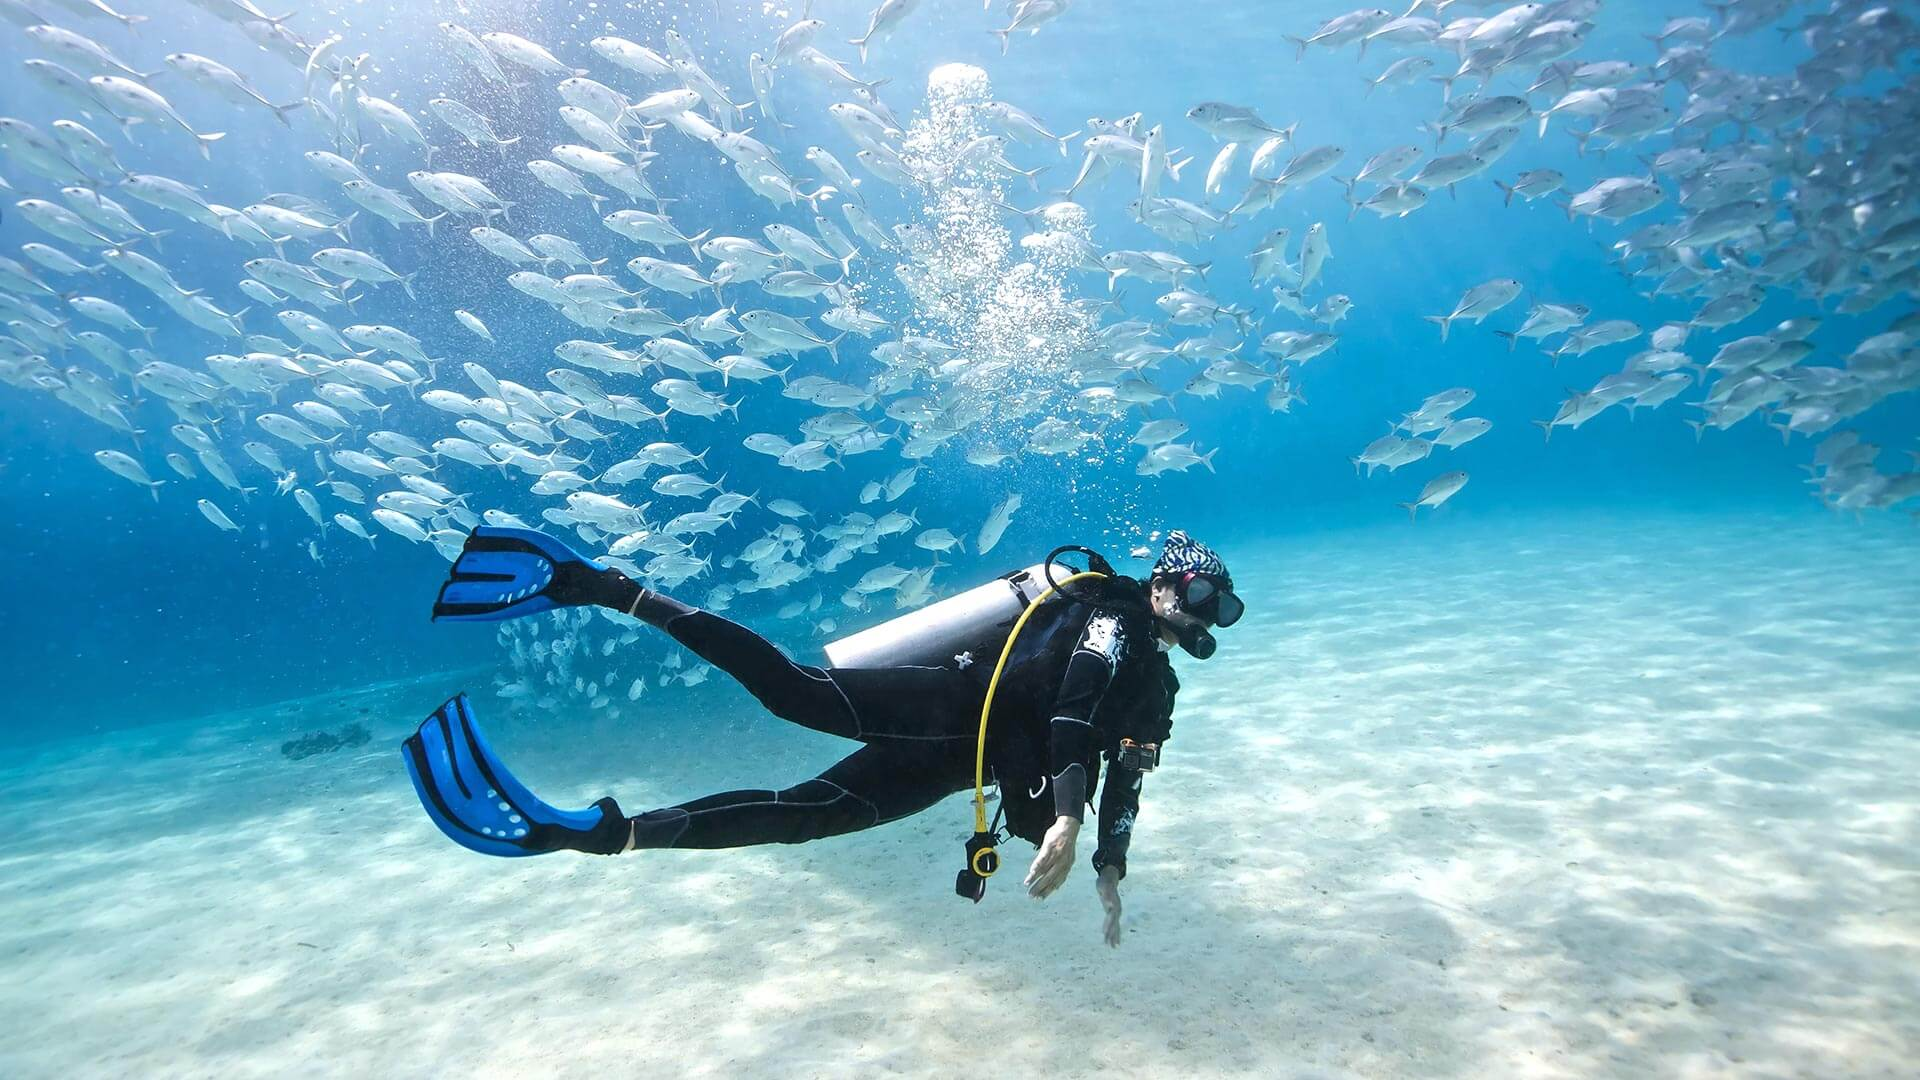 Swimming: A Somewhat-Mandatory Movement for Scuba Diving